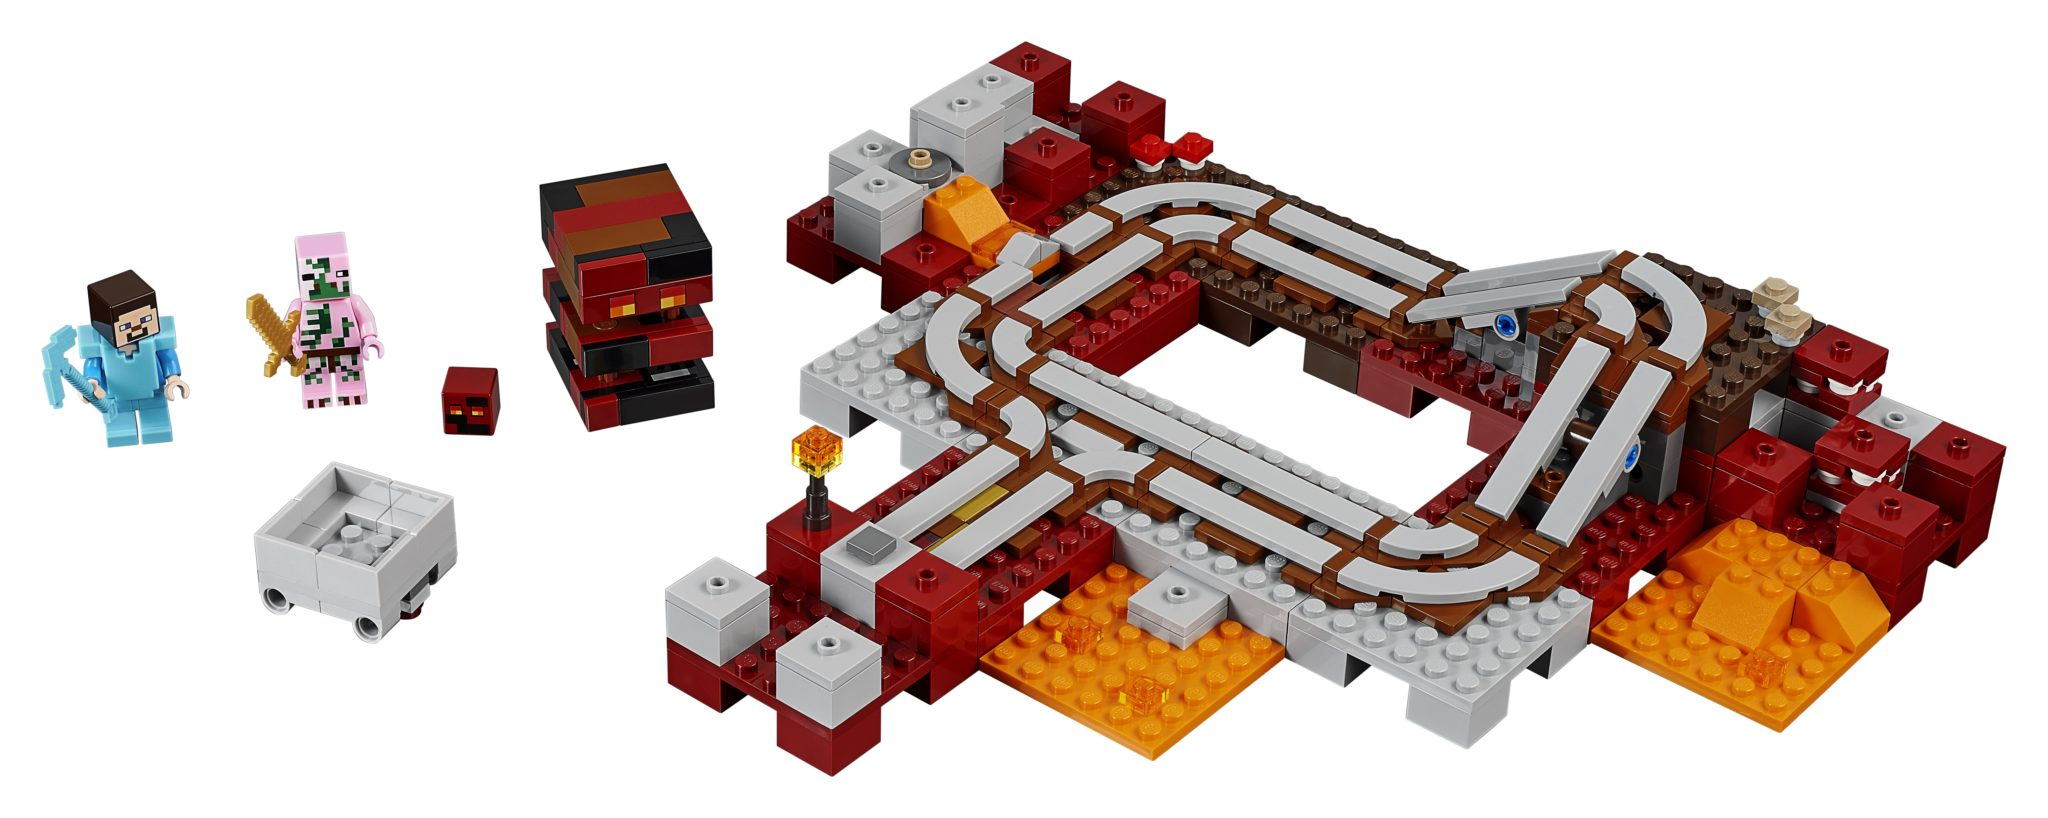 New Cool Toys Unveiled at Toy Fair 2017 - Minecraft LEGO The Nether Railway